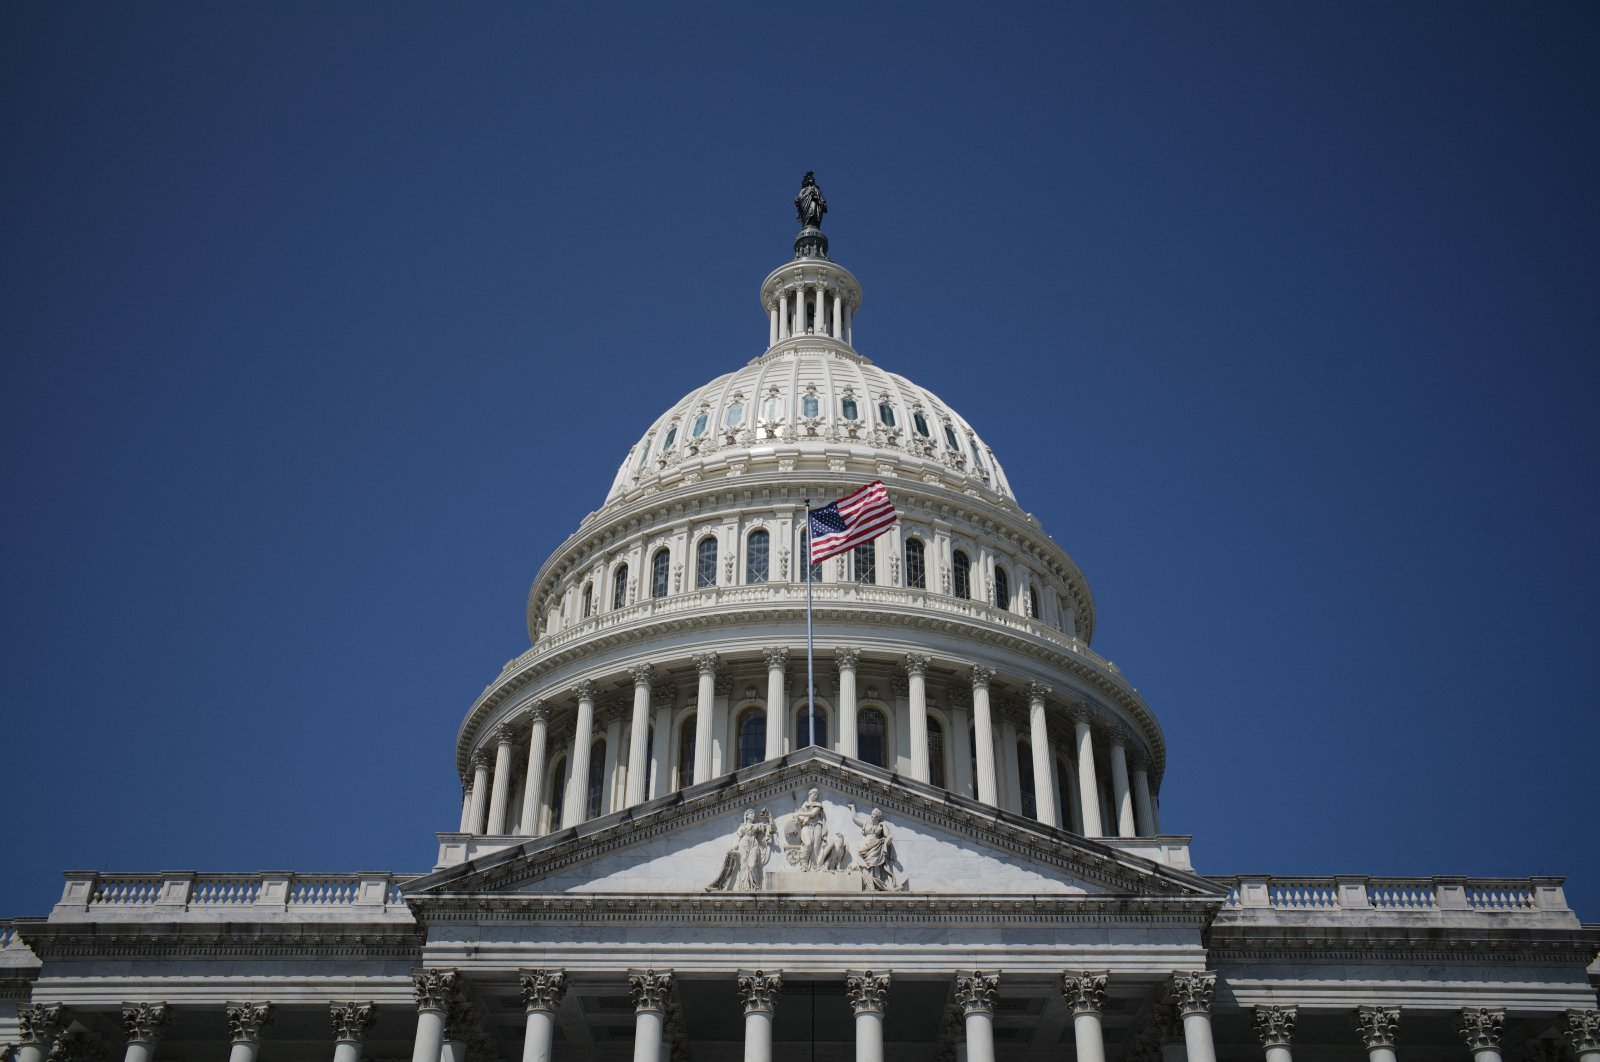 The national flag flies over the U.S. Capitol in Washington, D.C., U.S., Aug. 8, 2021. (AFP Photo)